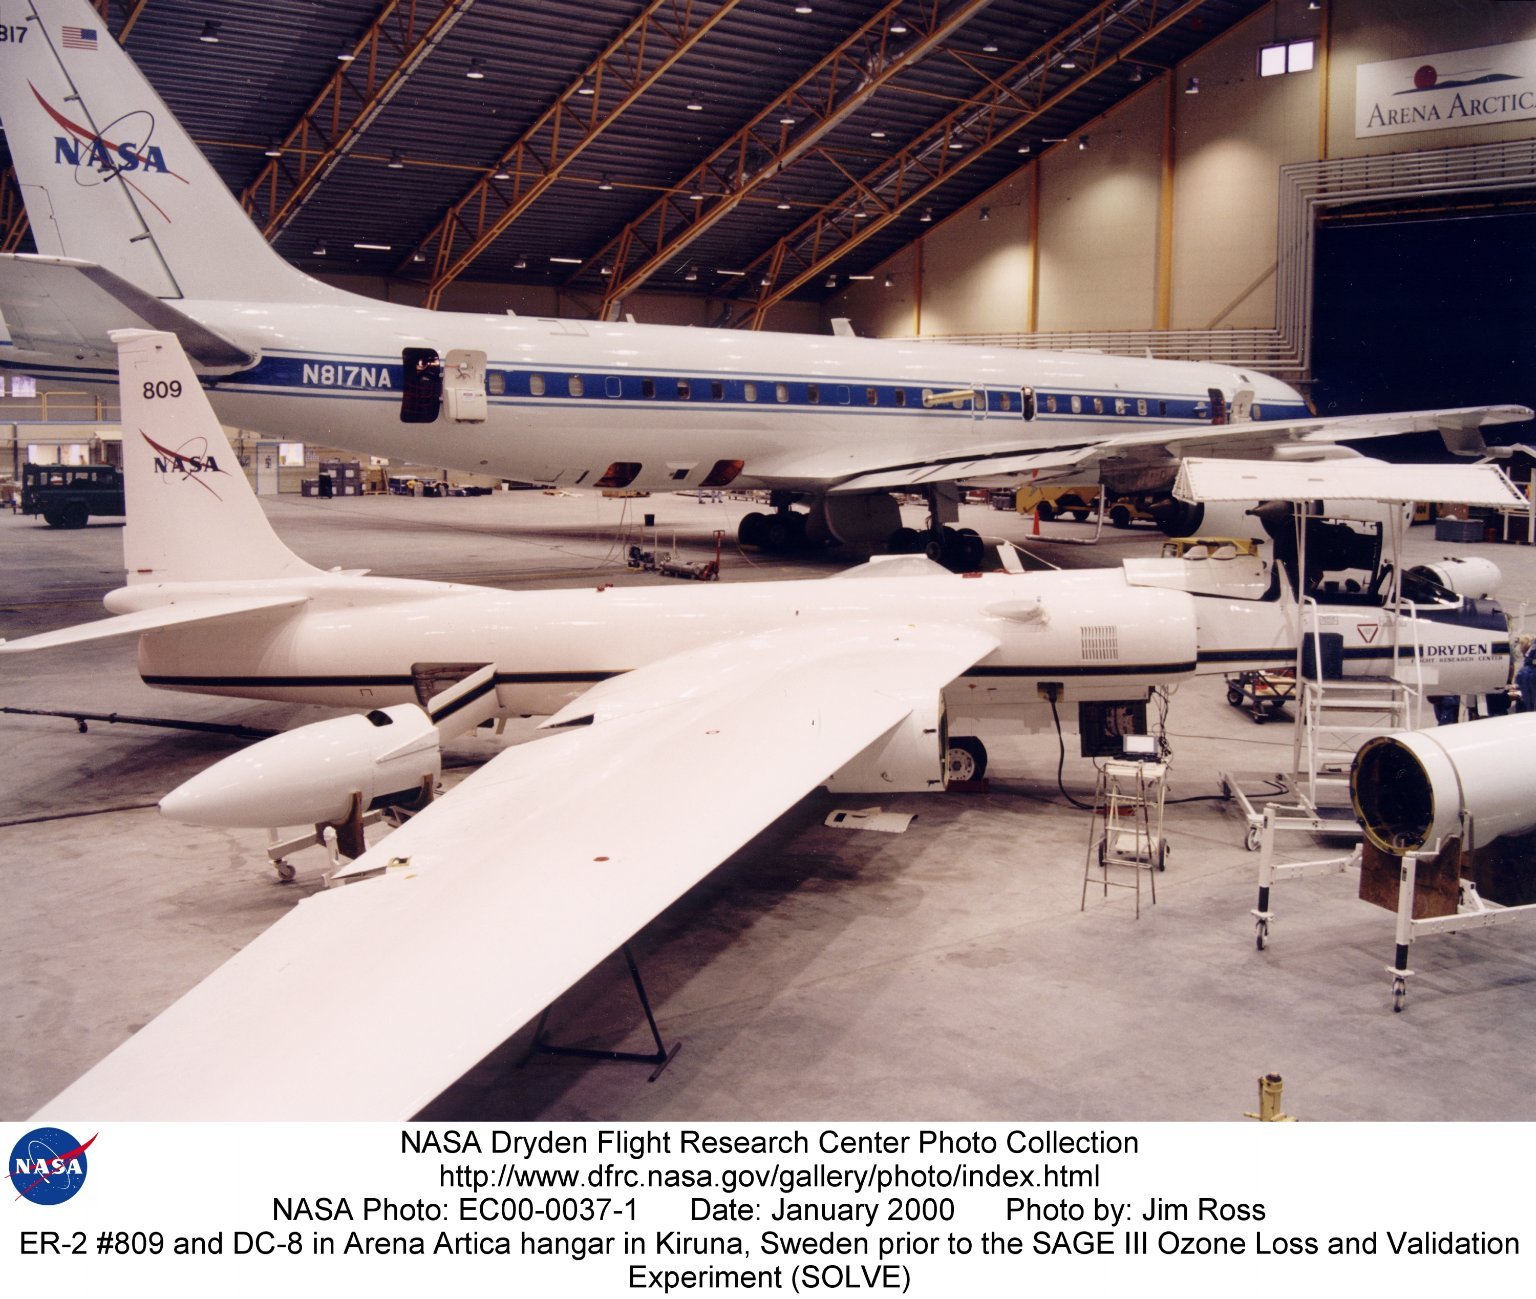 ER-2 #809 and DC-8 in Arena Arctica hangar in Kiruna, Sweden prior to the SAGE III Ozone Loss and Va